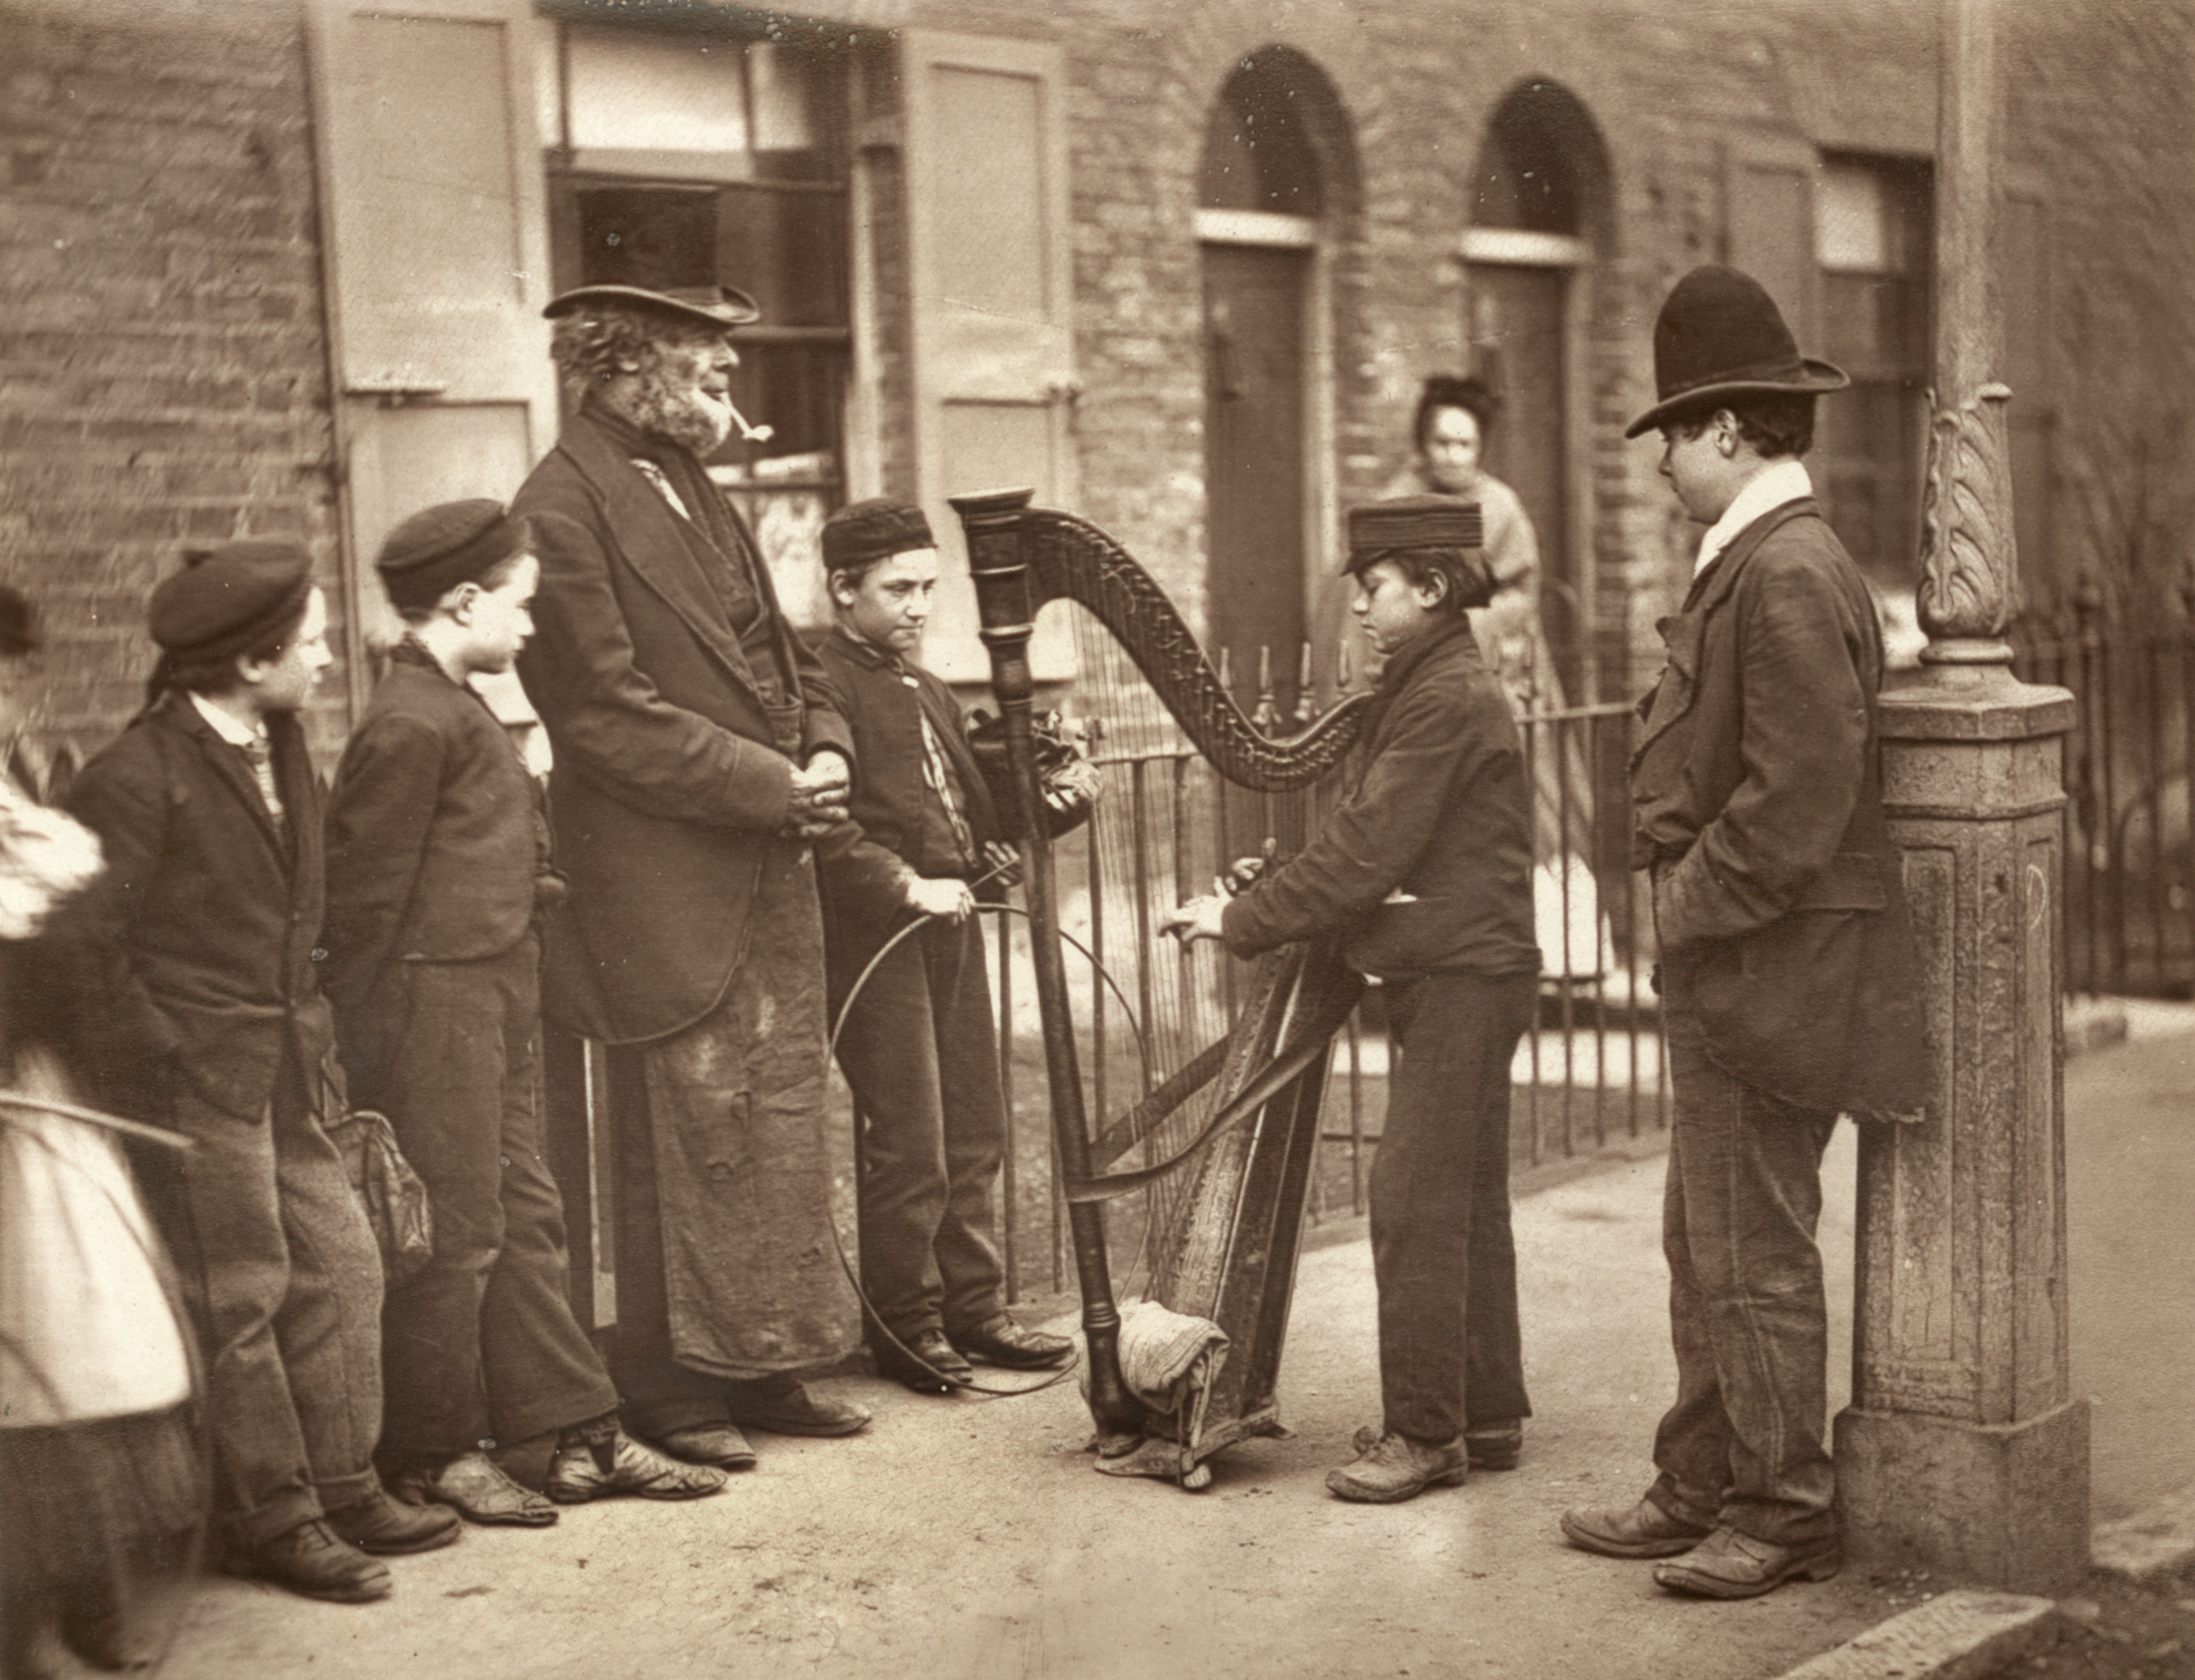 Italian immigration in late-Victorian Britain / Our